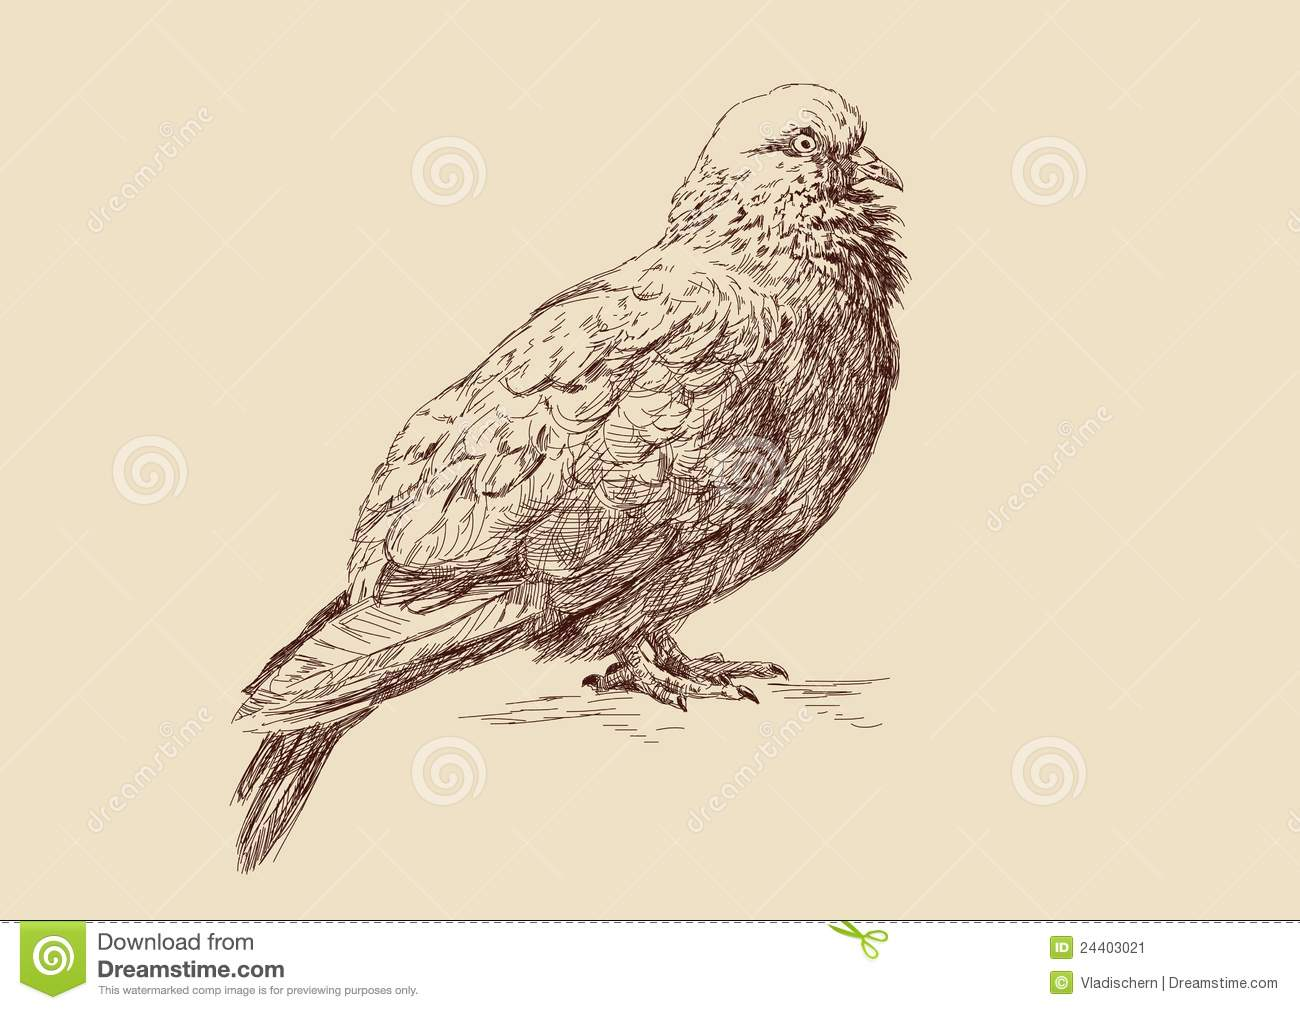 Pigeon illustration - photo#15